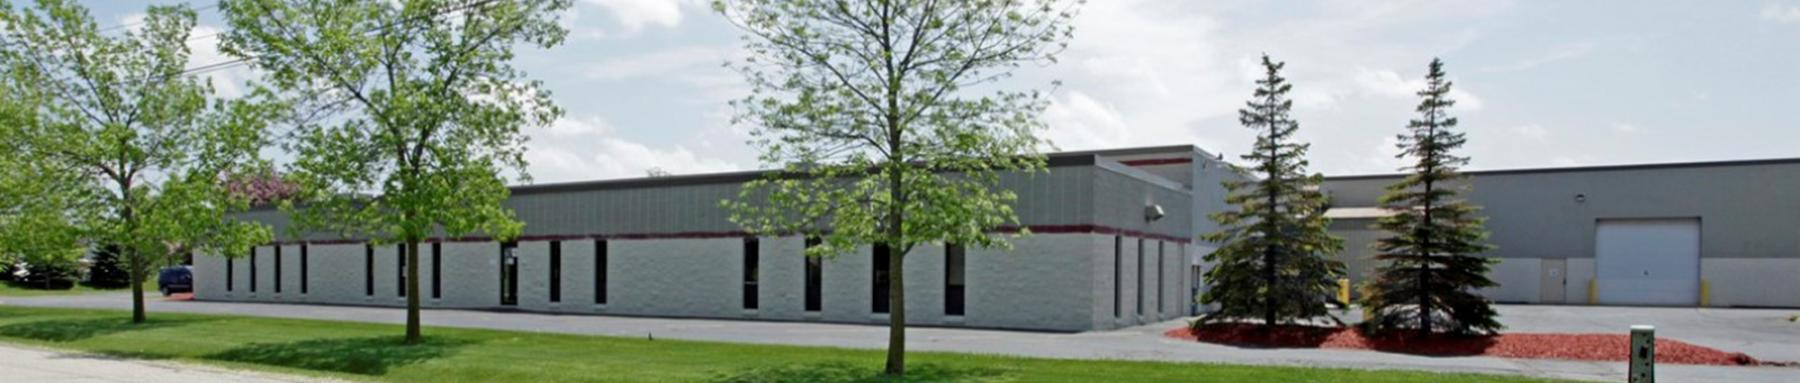 Rytec Acquires Hartford Property, Increasing Production and Expanding Operations